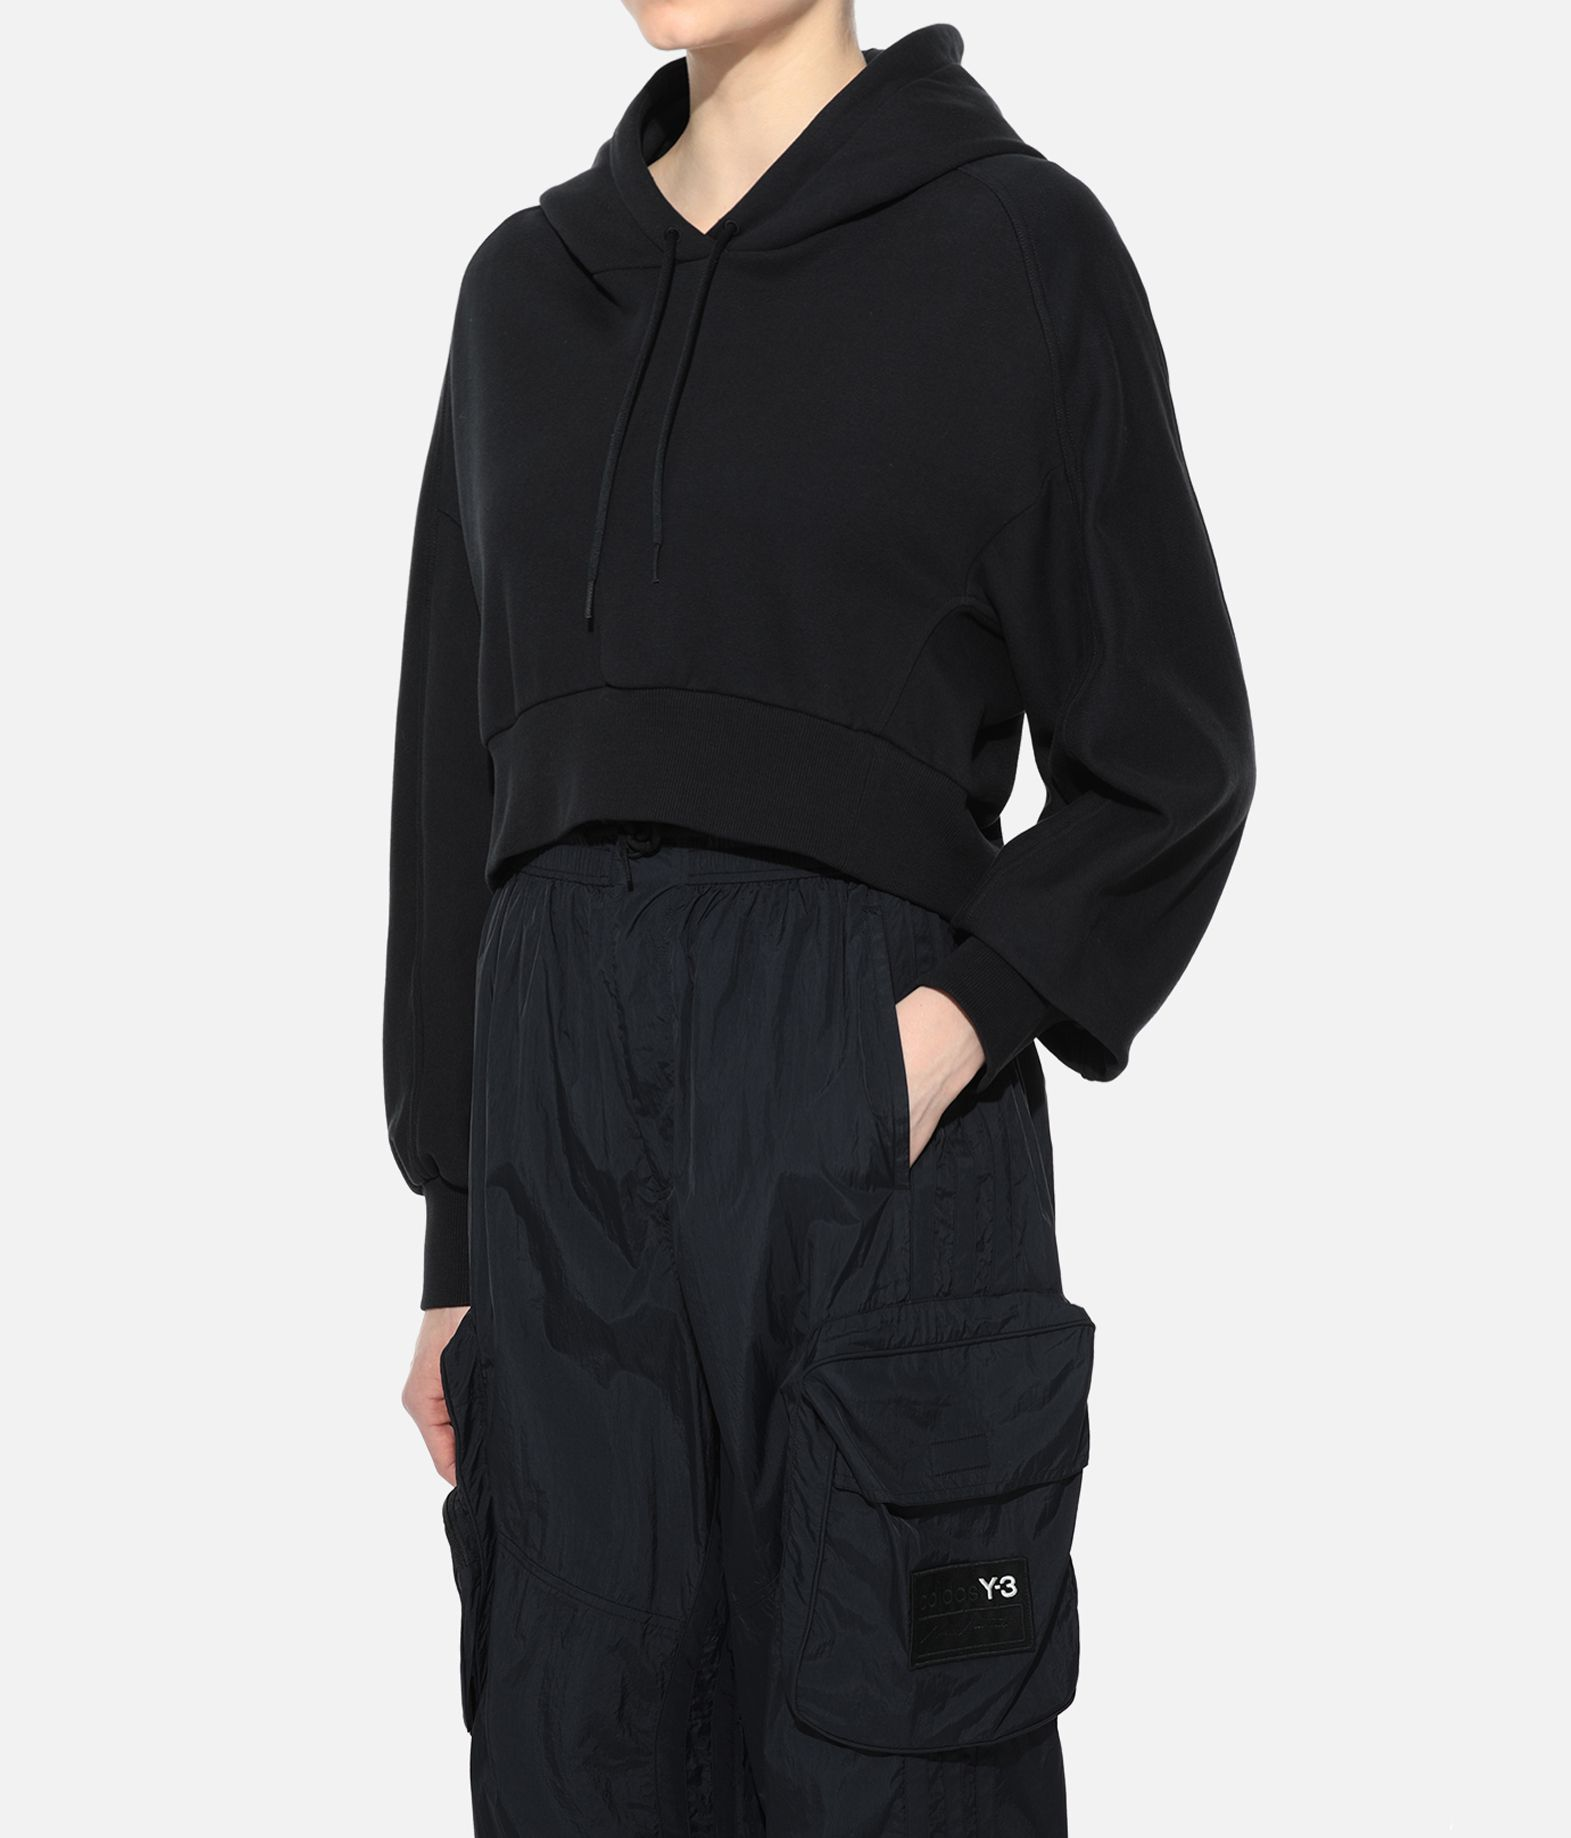 Y-3 Y-3 Toketa Print Cropped Hoodie Hooded sweatshirt Woman e